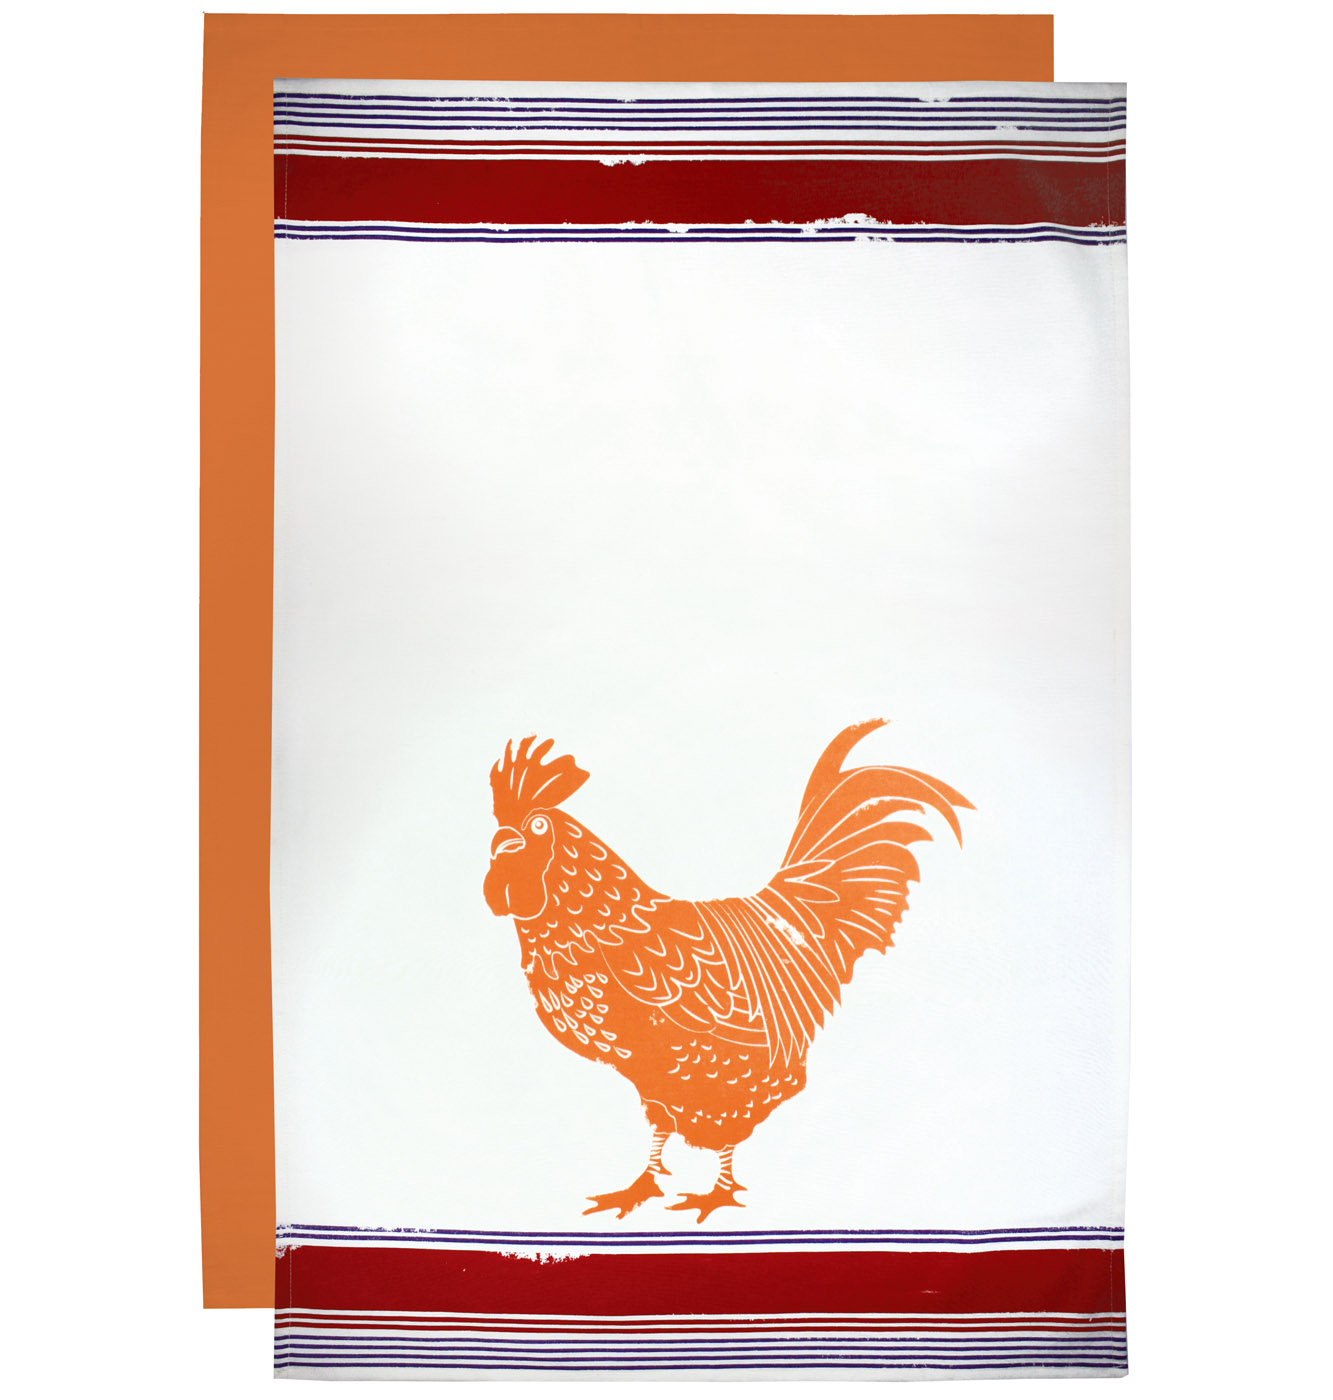 MUkitchen Flour Sack Towel 24 by 36-Inches Set of 2 Rooster